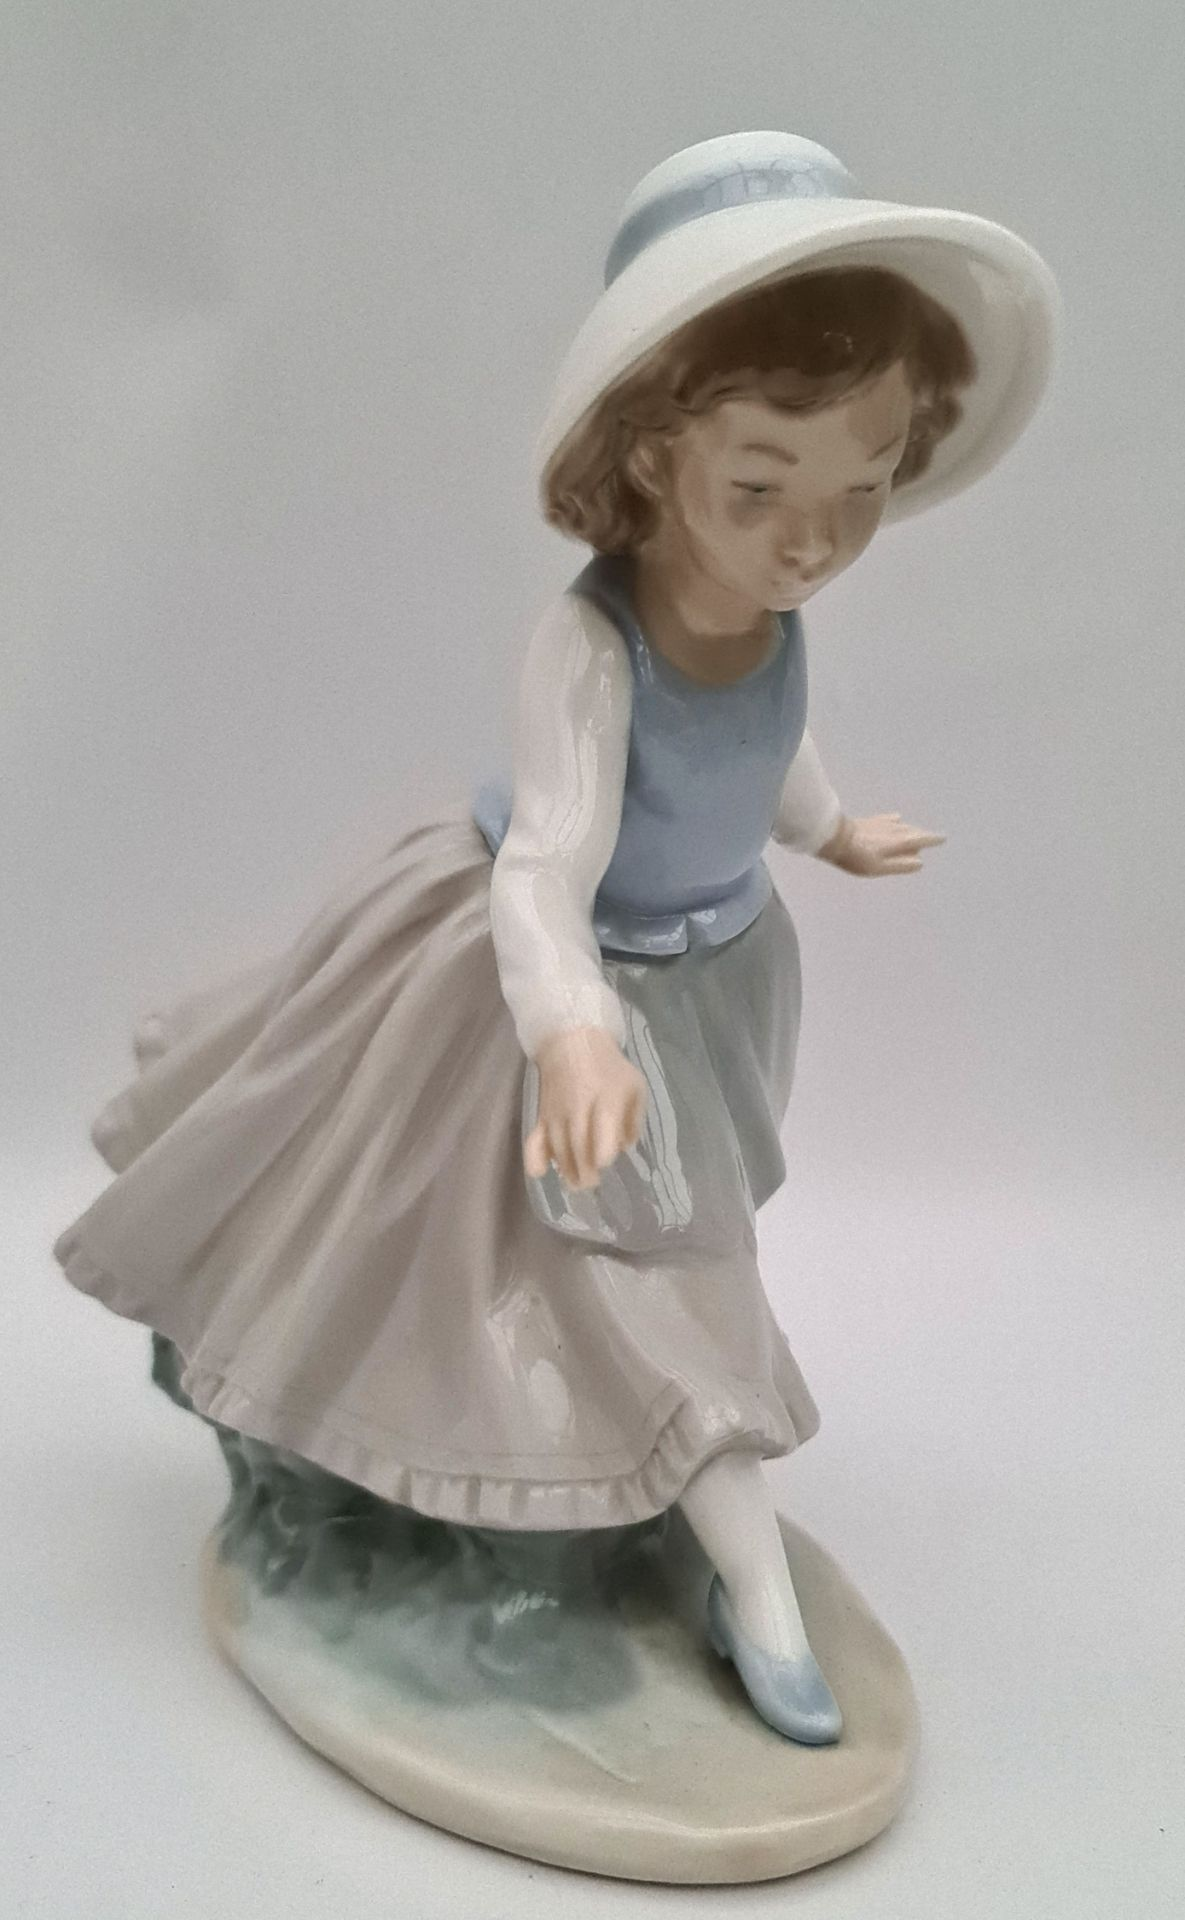 Vintage Lladro Figure 8 inches tall